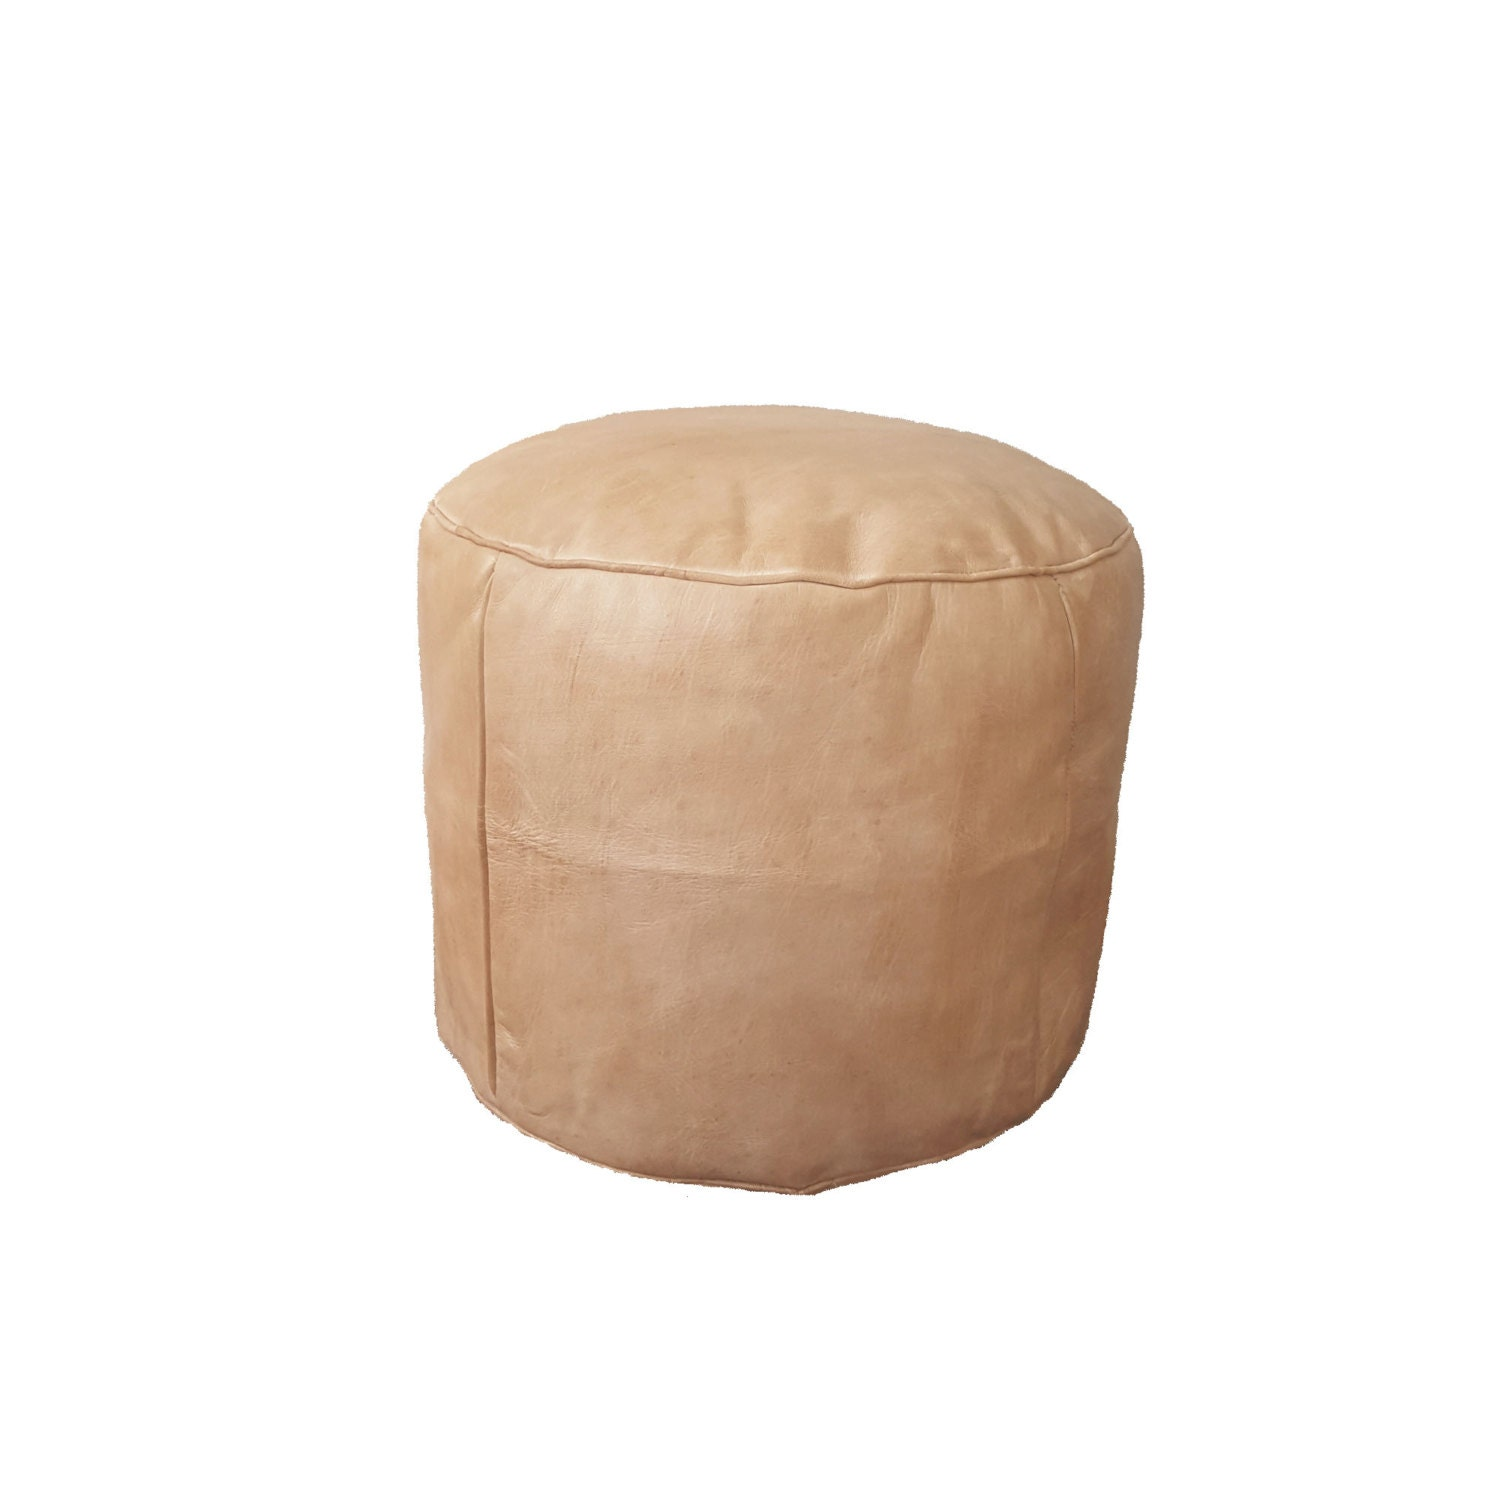 round leather pouf ottoman natural tan leather. Black Bedroom Furniture Sets. Home Design Ideas